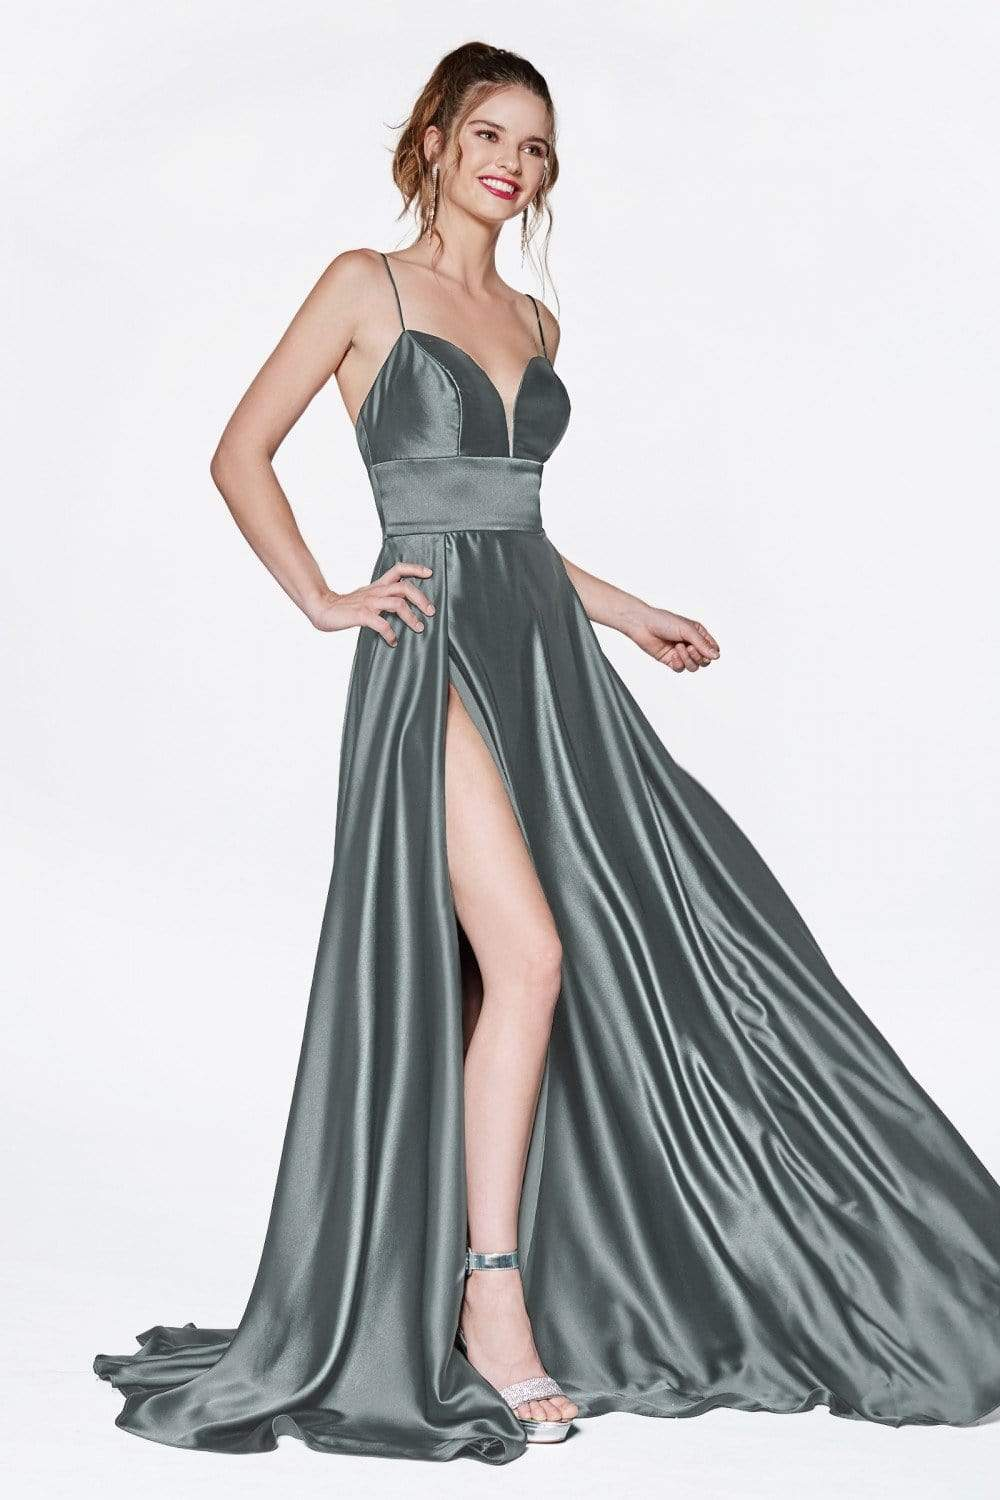 Cinderella Divine - CJ523SC Thin Strapped Satin Dress with Slit